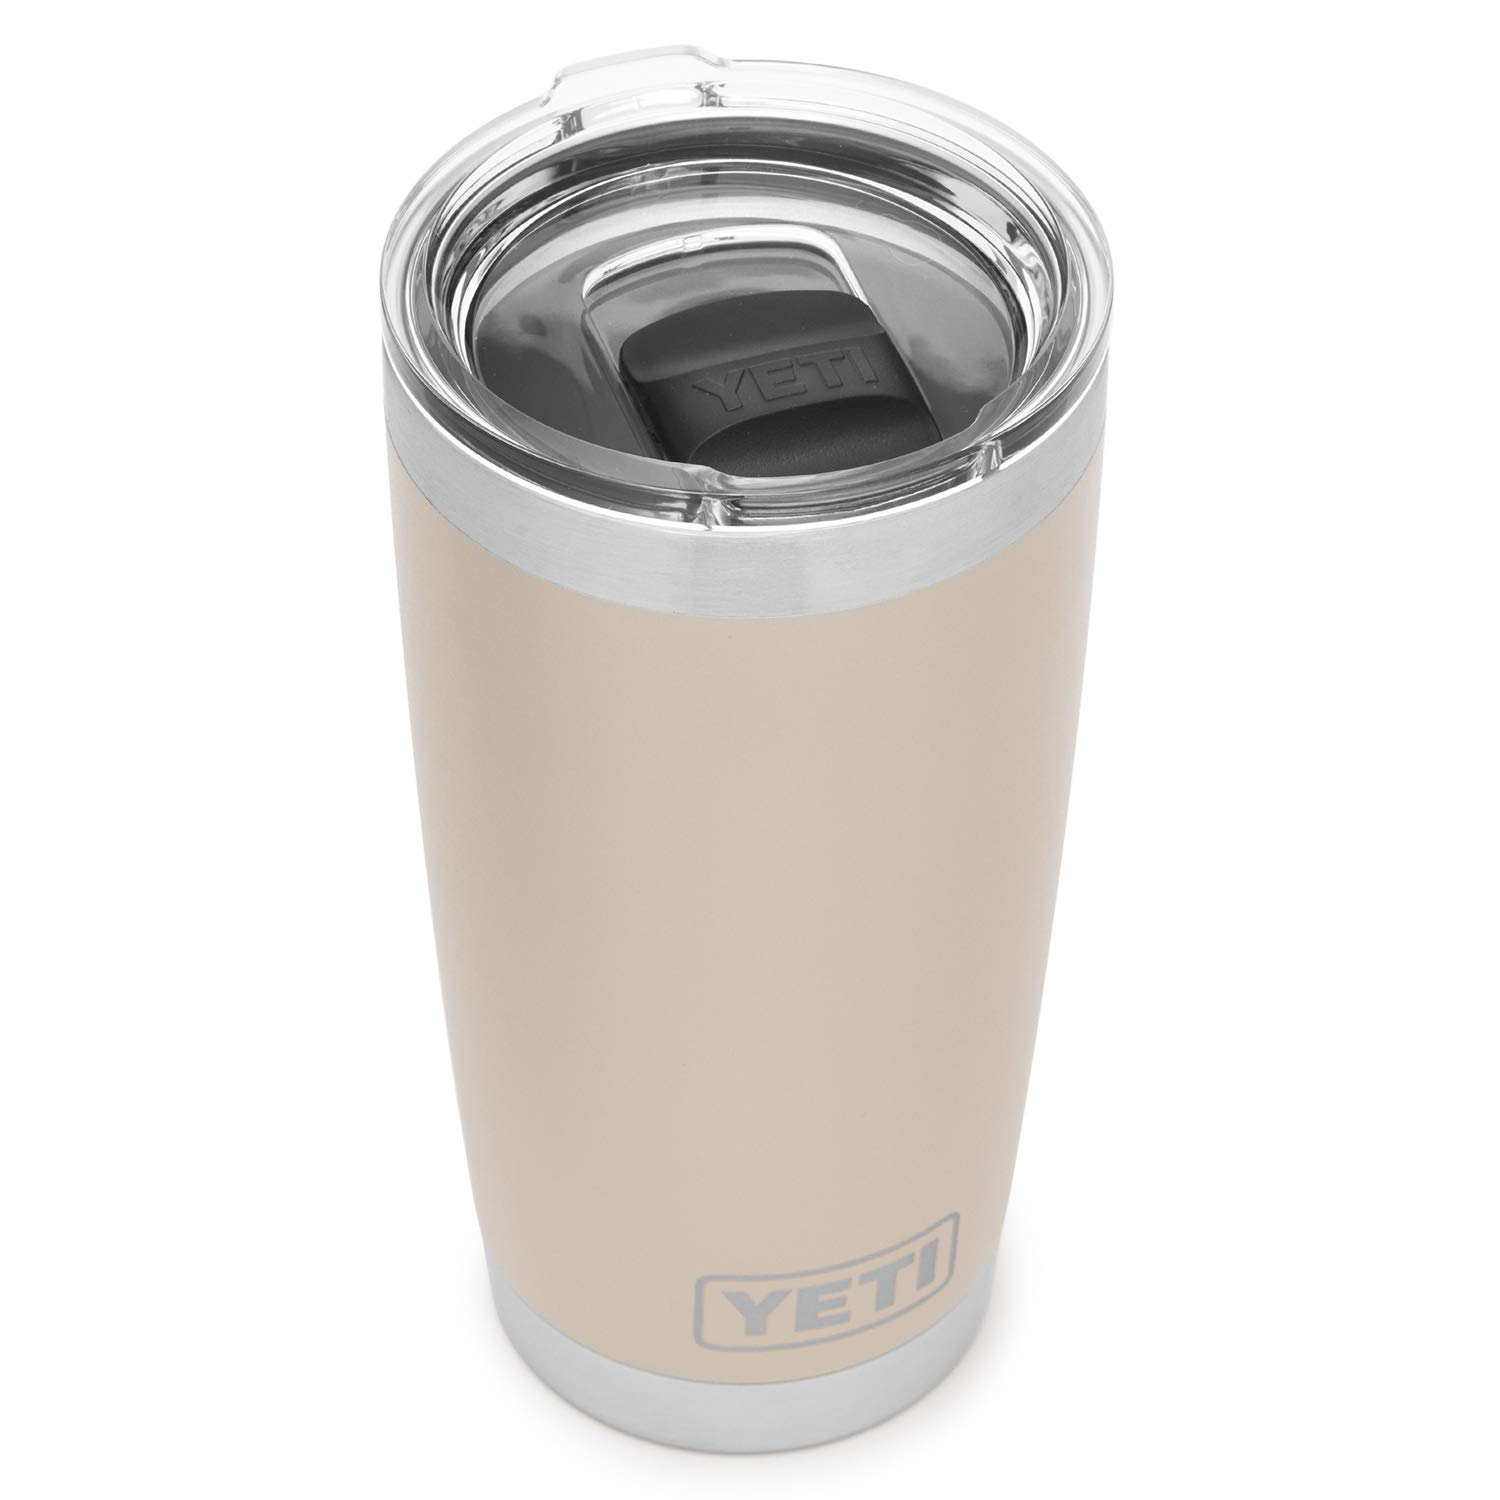 YETI Rambler 20 oz Stainless Steel Vacuum Insulated Tumbler w/MagSlider Lid, Sand